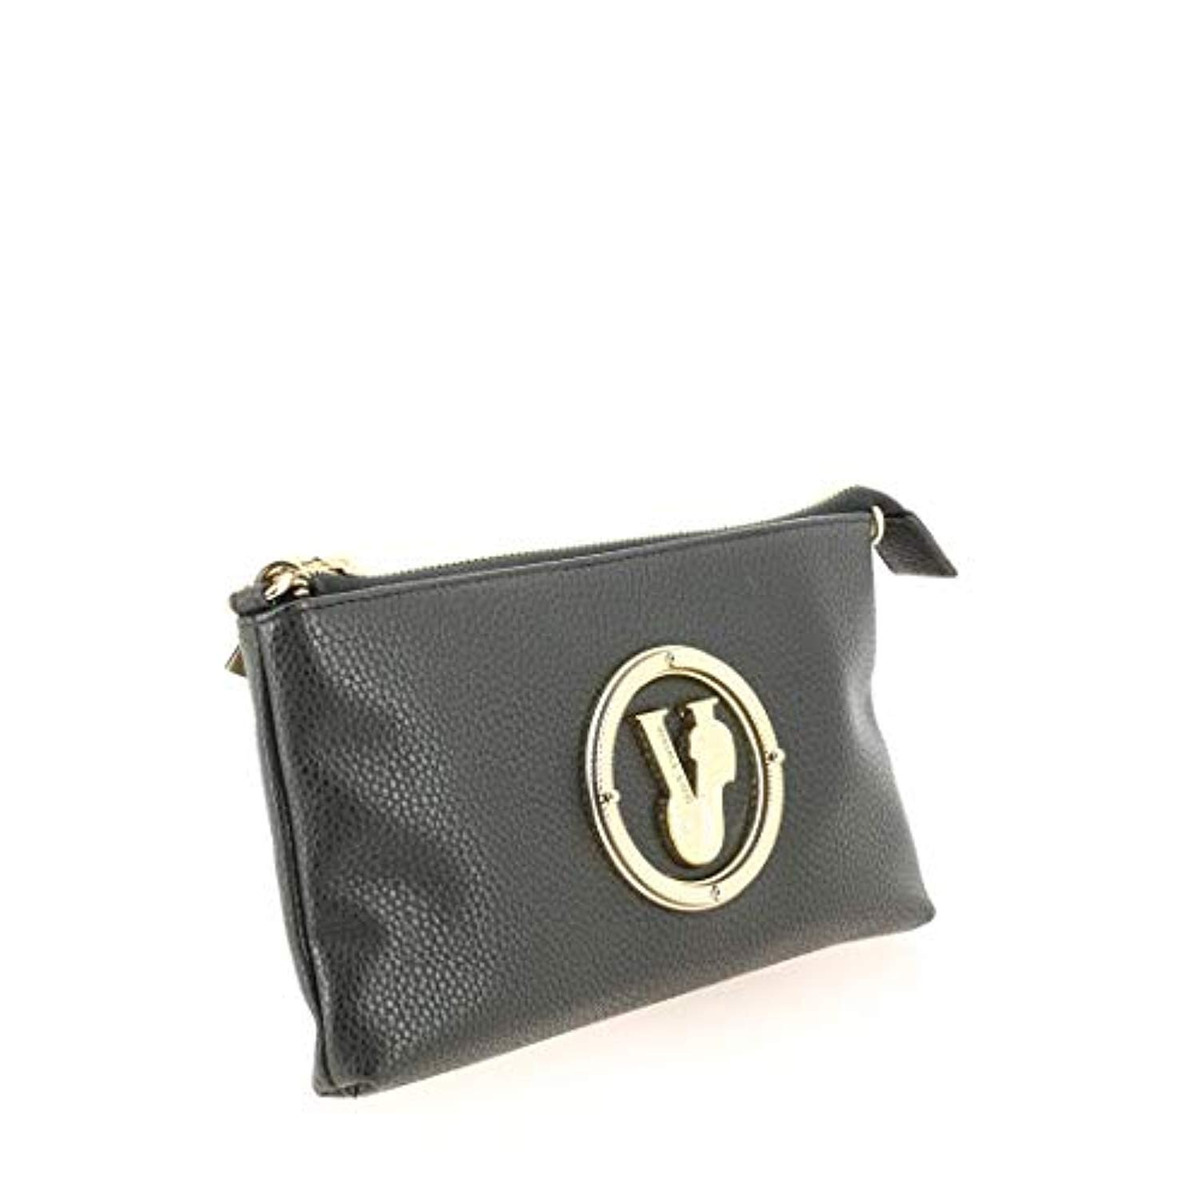 Jeans Clutch Bolsos Versace Bags Women S Ibfm7gY6yv